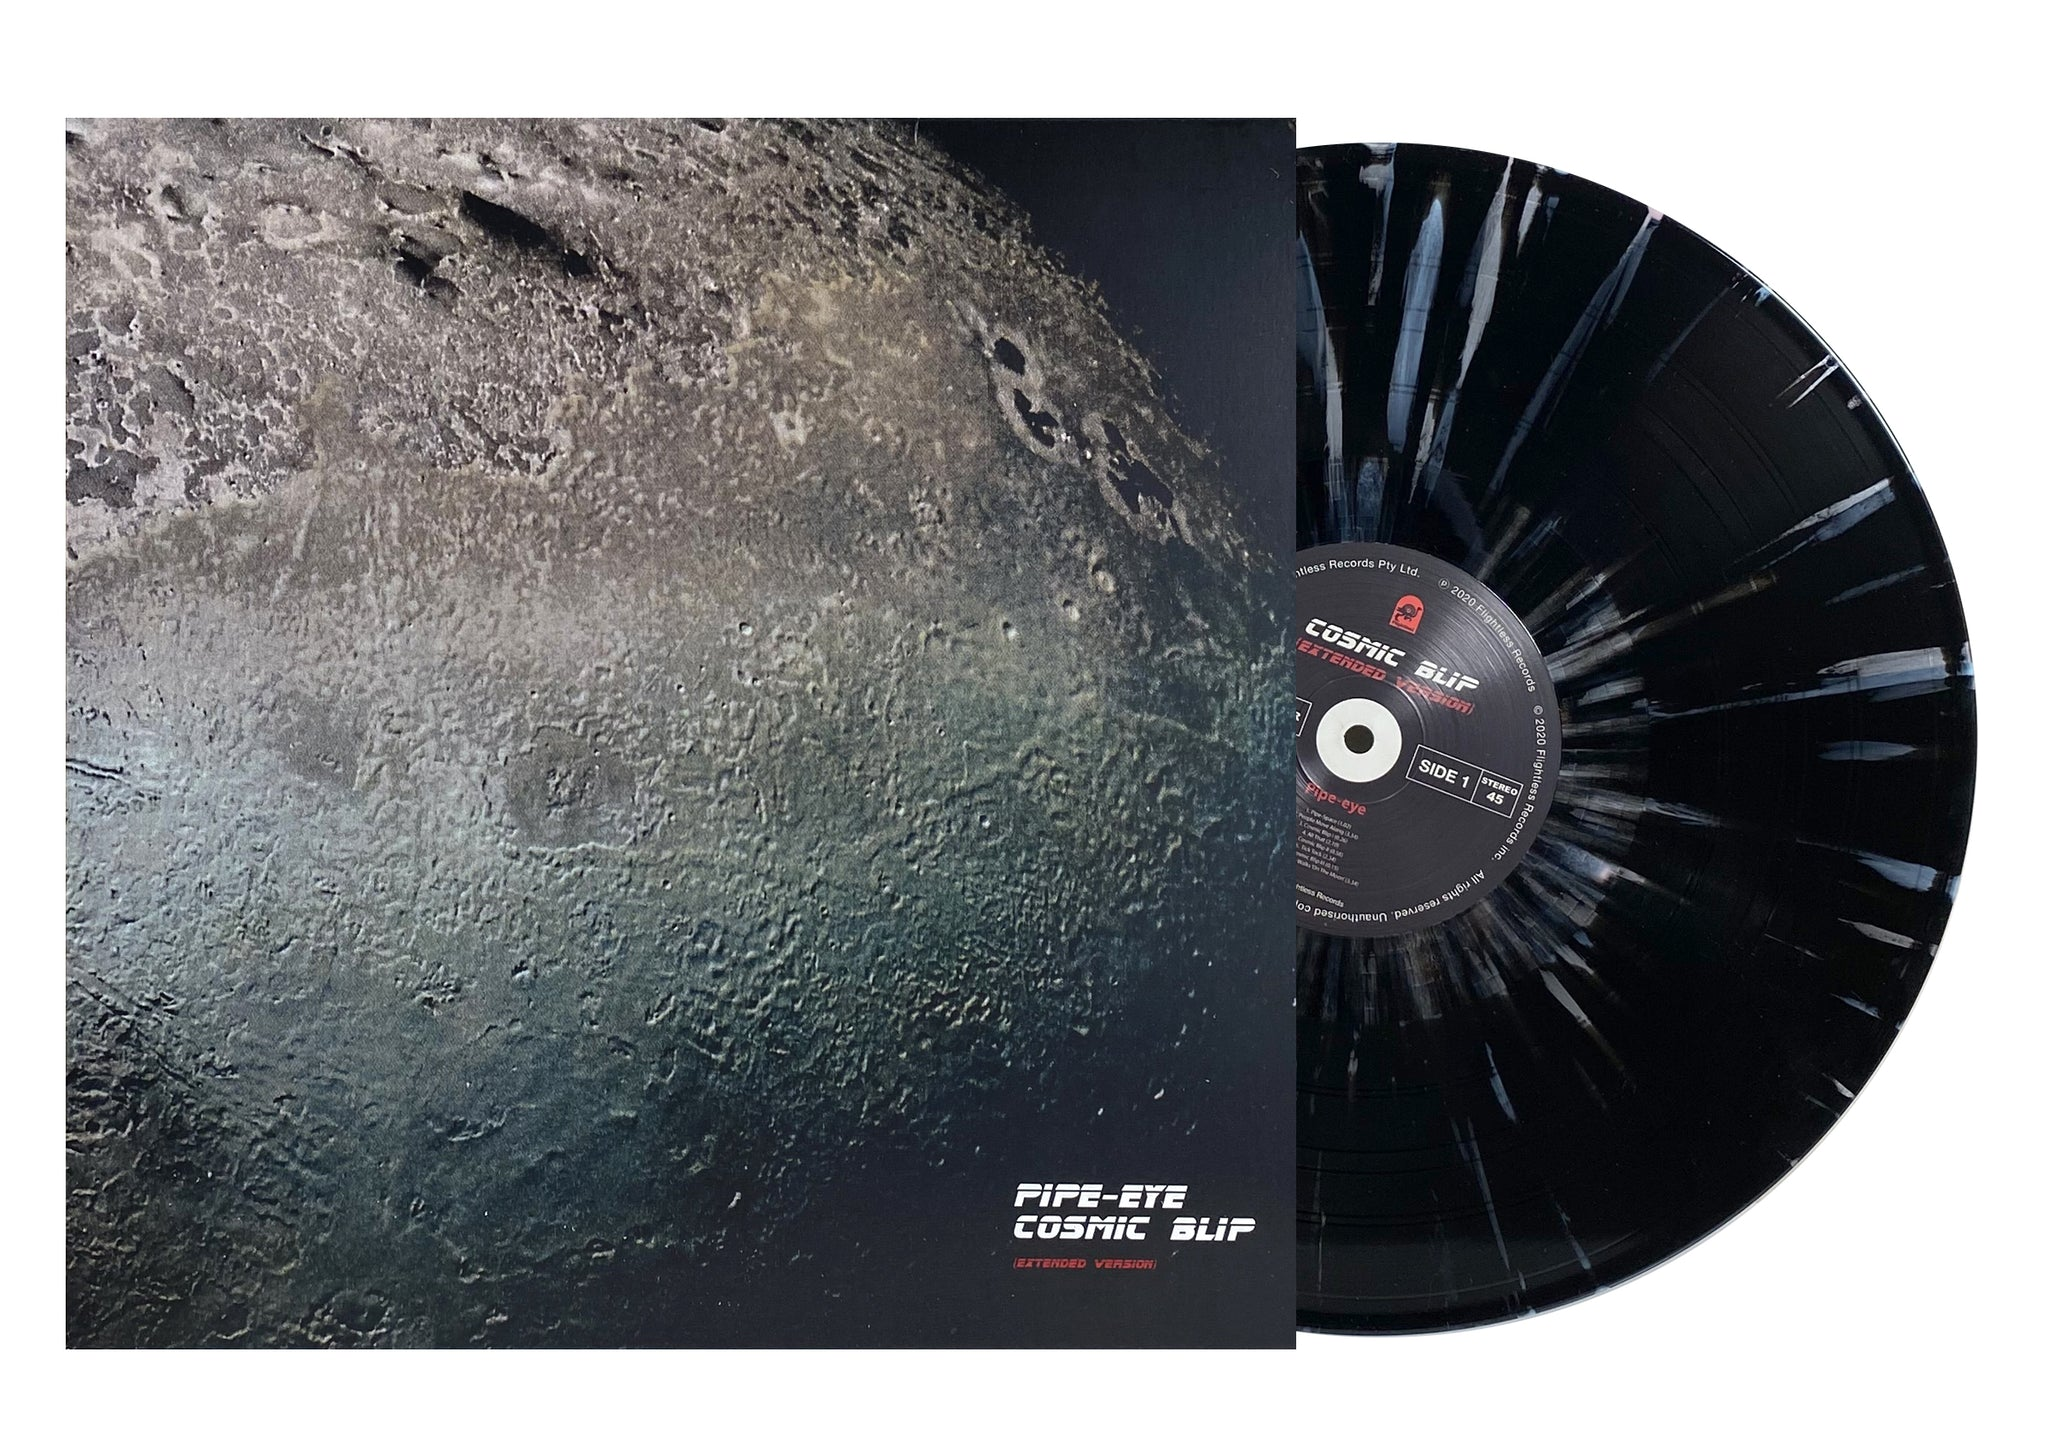 "Pipe-eye - Cosmic Blip 12"" (Extended Version Limited Edition)"